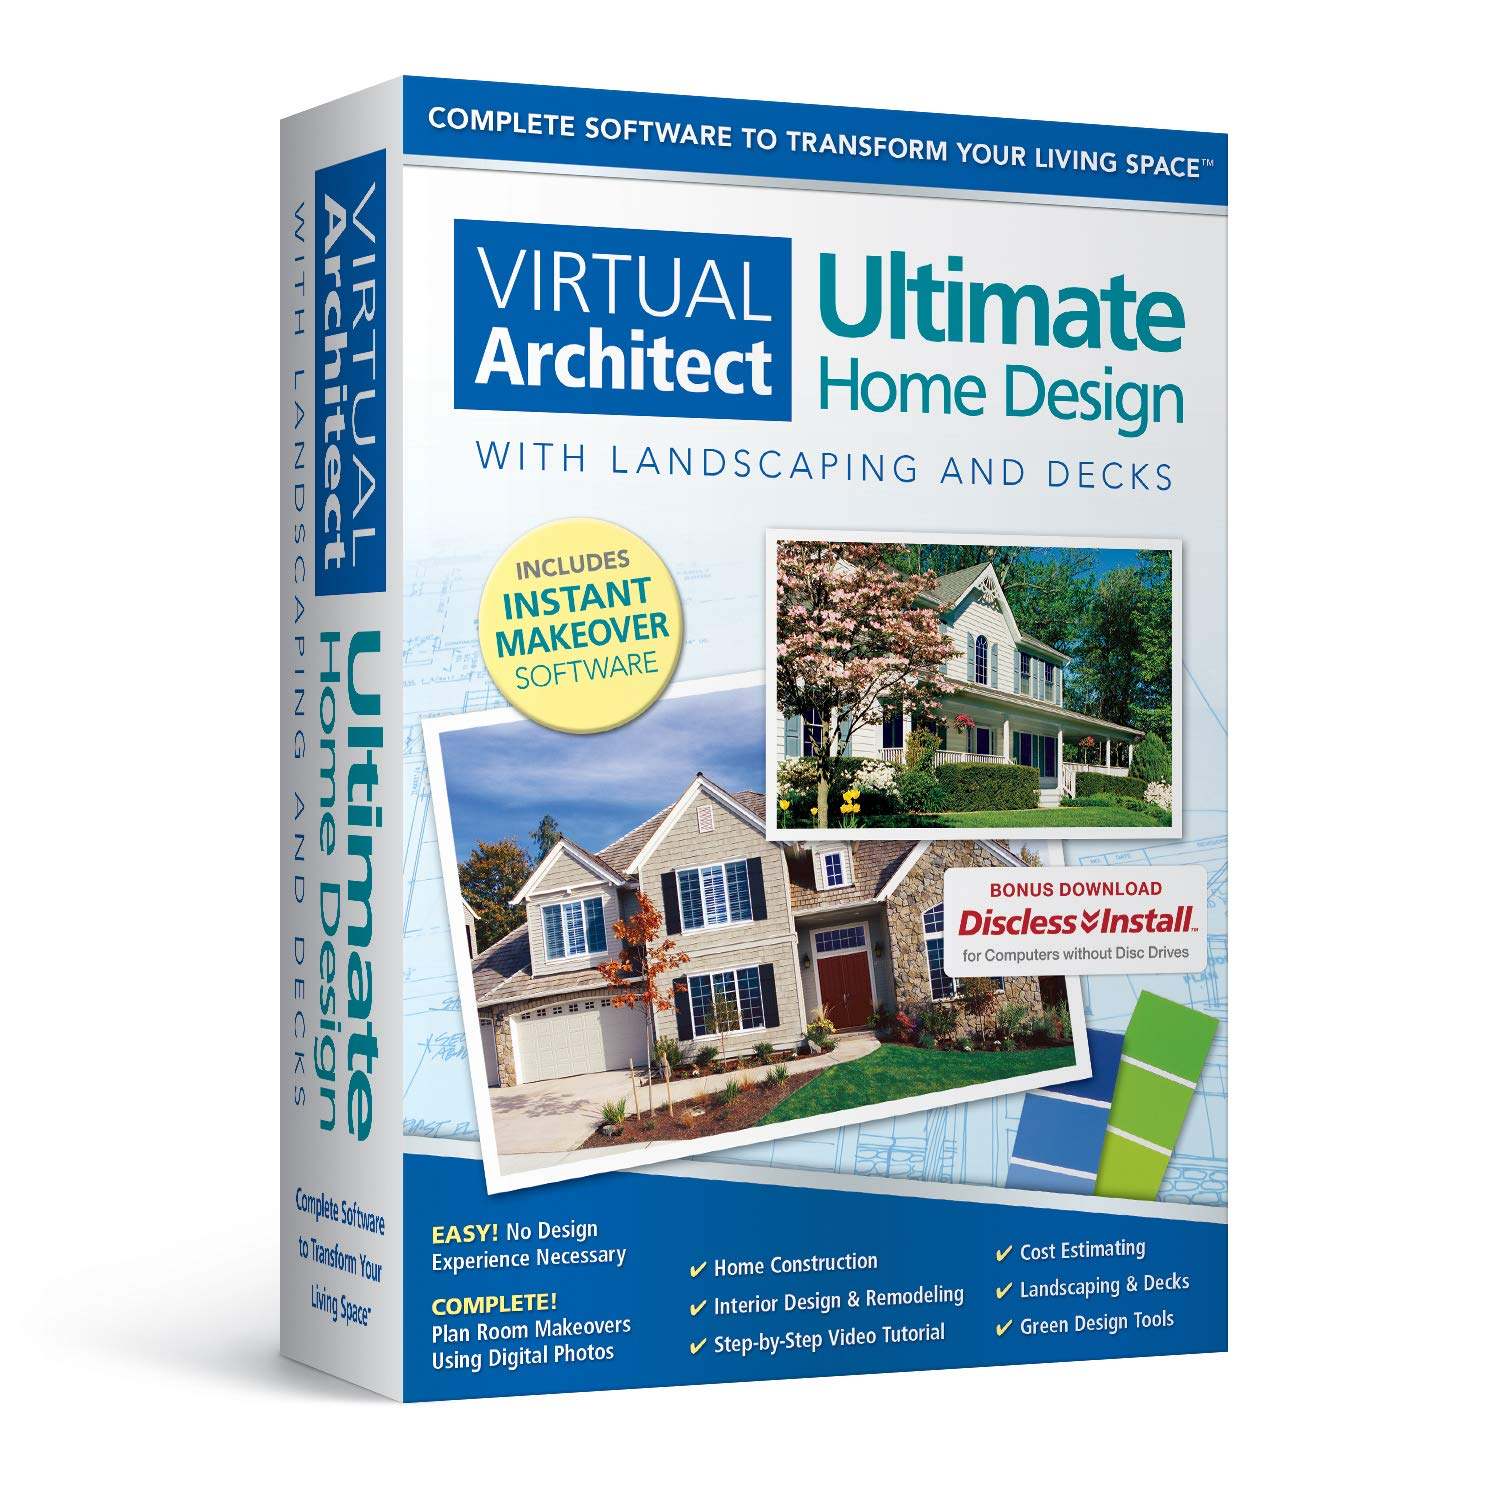 Virtual Architect Ultimate Home Design with Landscaping and Decks 8.0 by Nova Development US